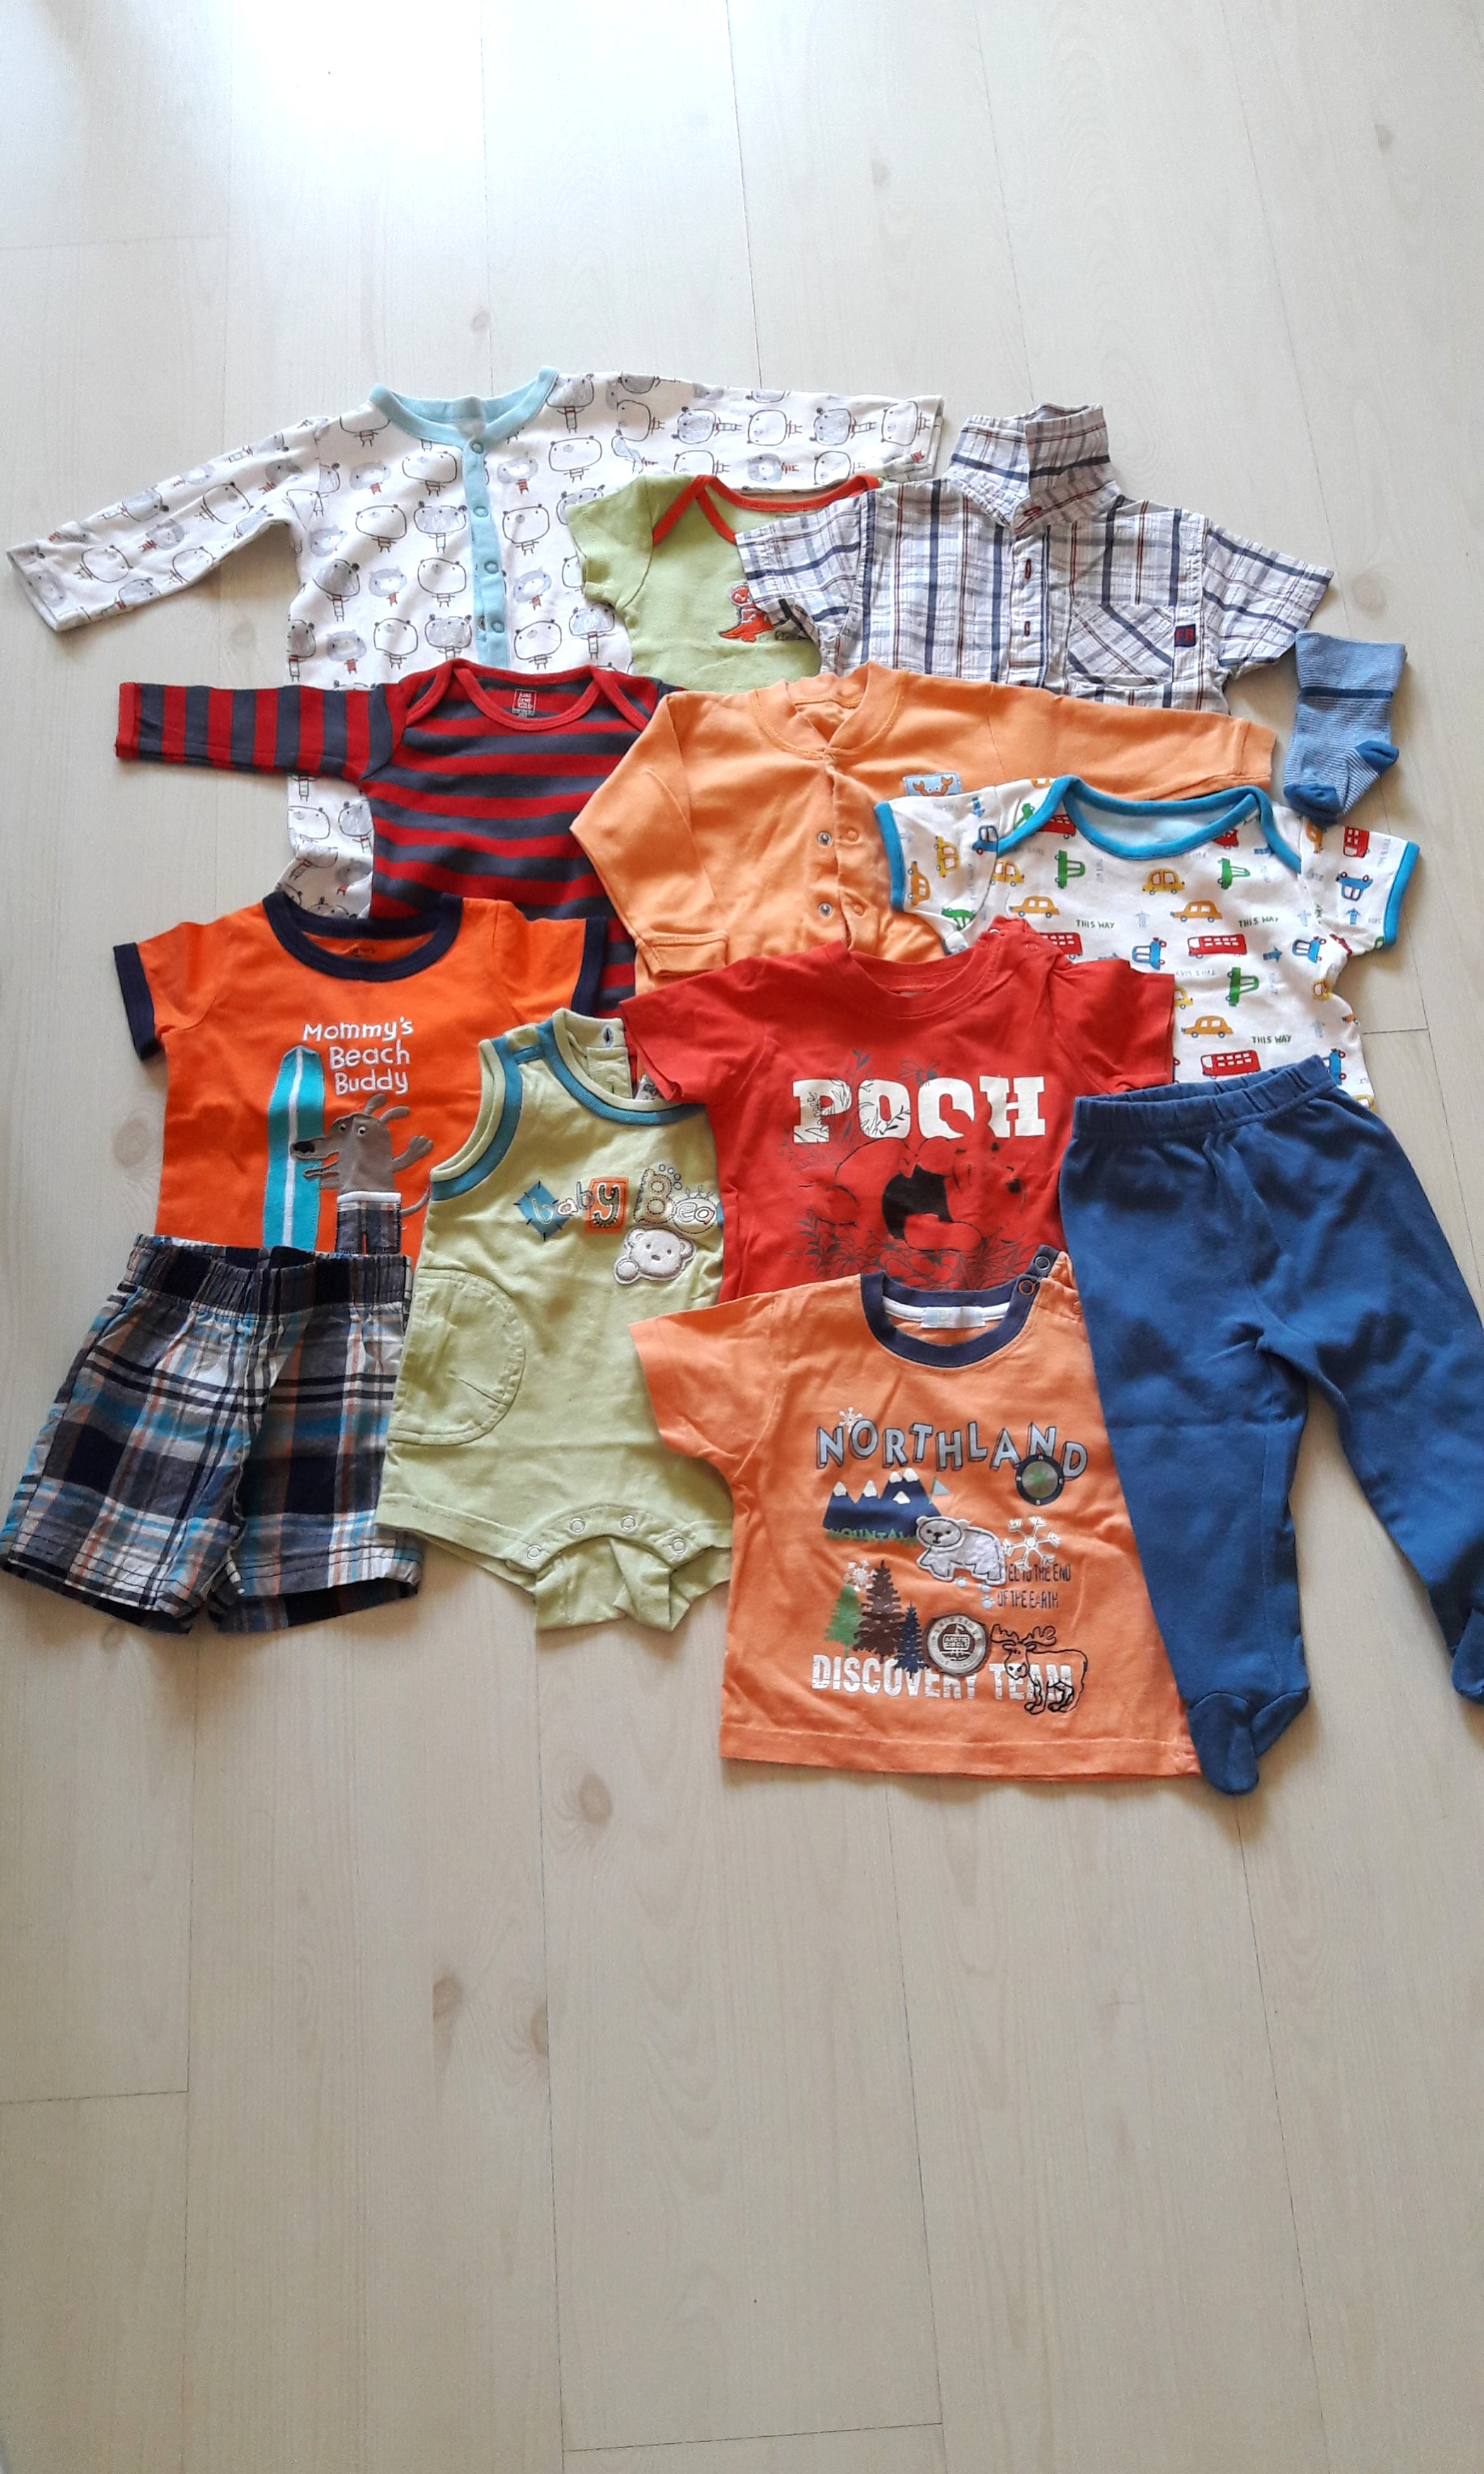 3cd3e2336 Bundle of 12 Preloved Baby Clothing (Fox Baby/Mothercare/Carter's)(0-6M),  Toys & Games, Others on Carousell